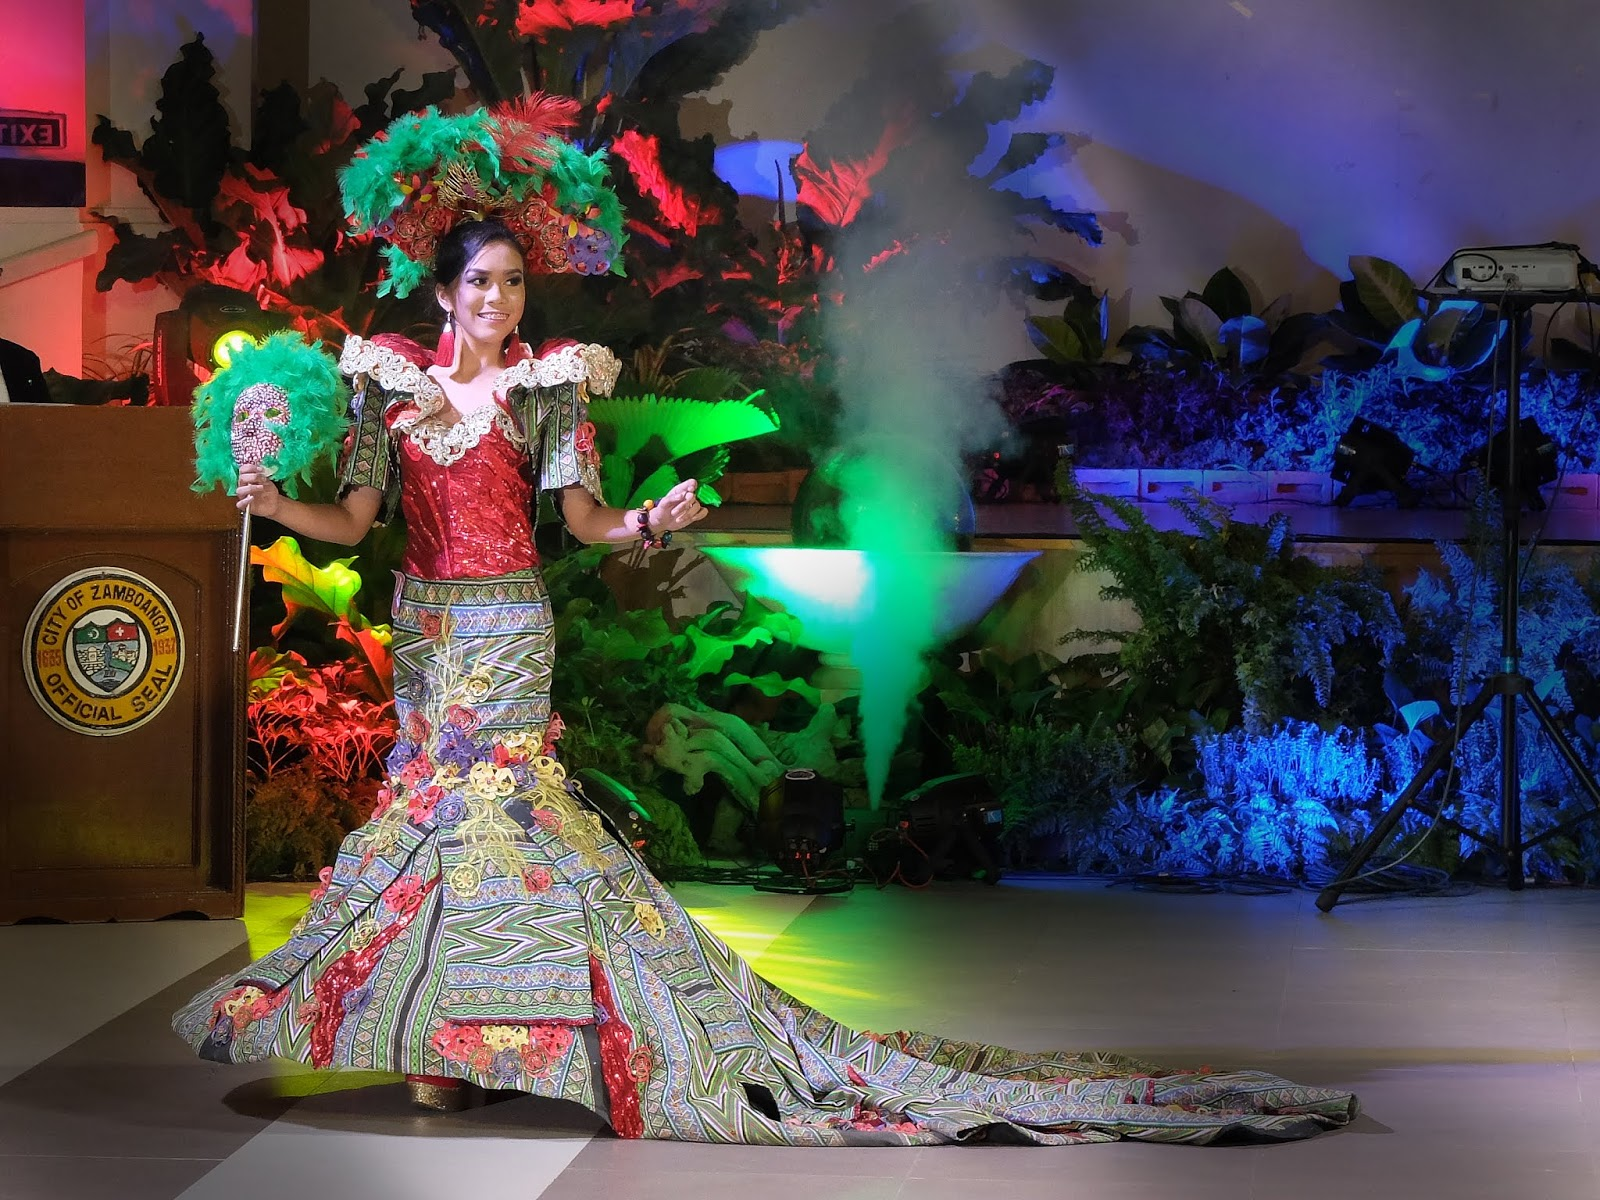 Masskara Festival of Bacolod City by Vicky Go Tonggal Festival de las Bellas y Flores Gown Competition National Costume